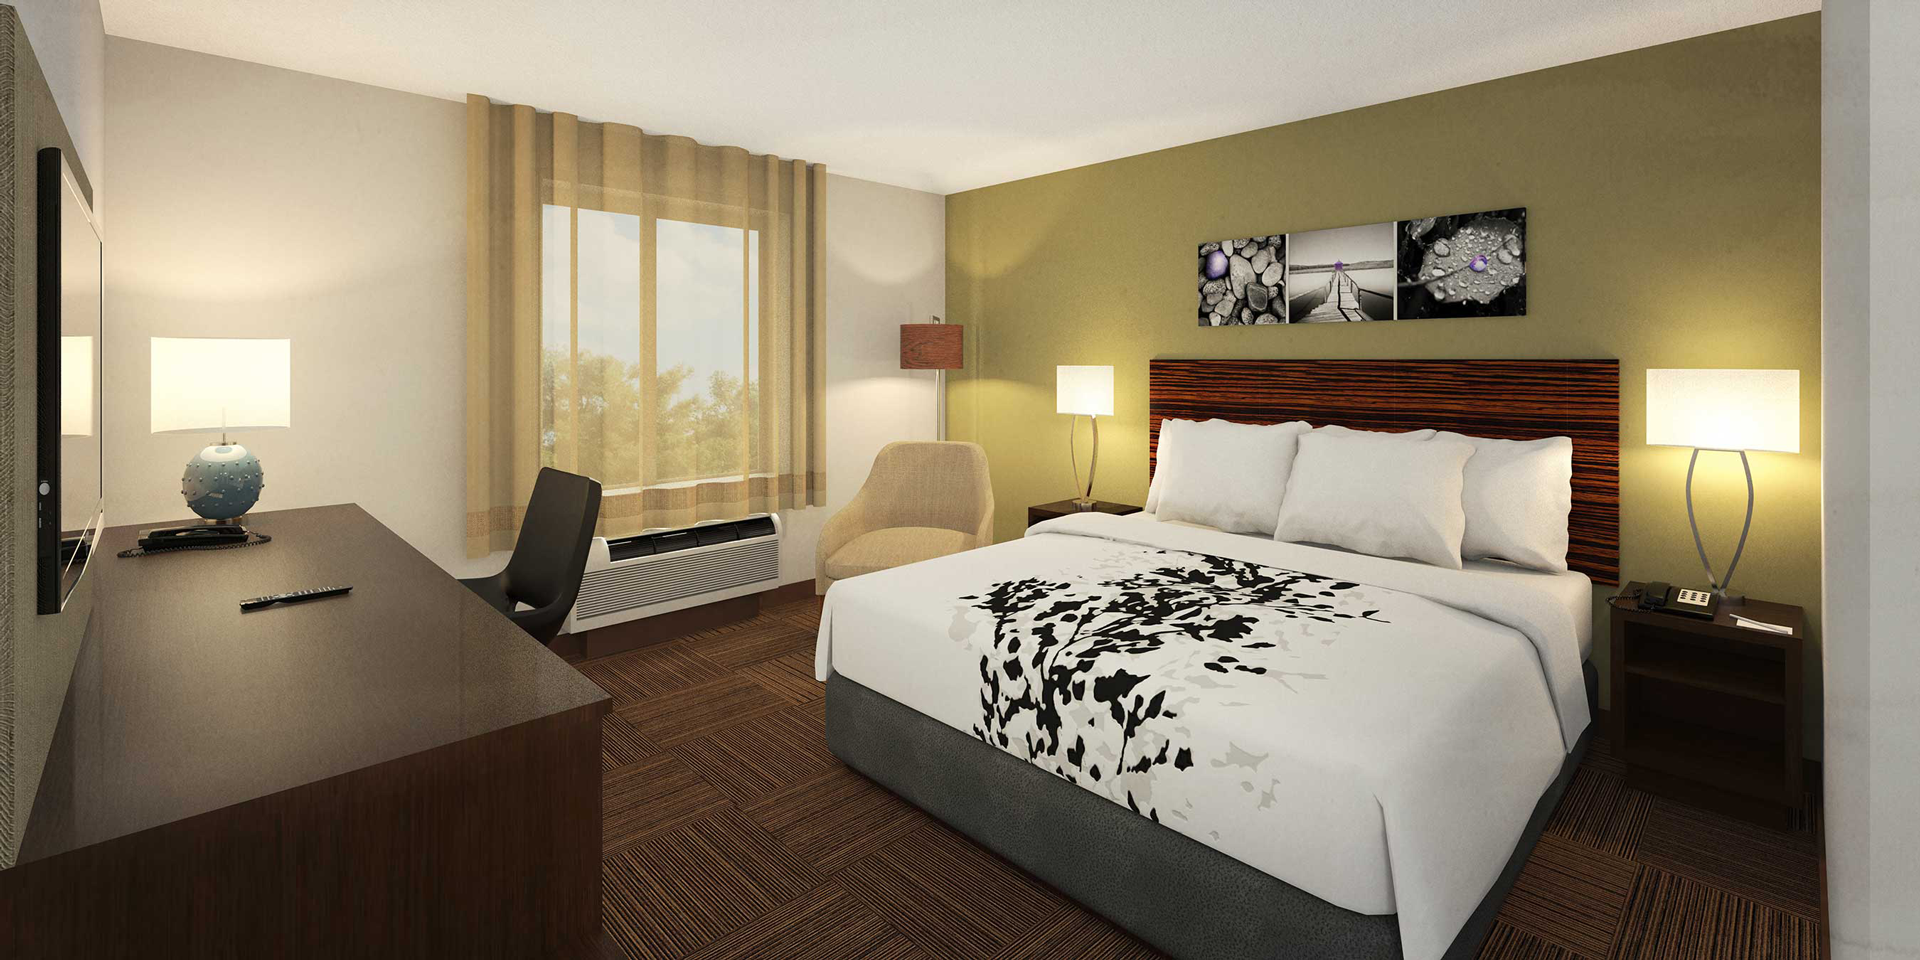 Choice Hotels moves to grow footprint in lucrative Mexican hospitality market